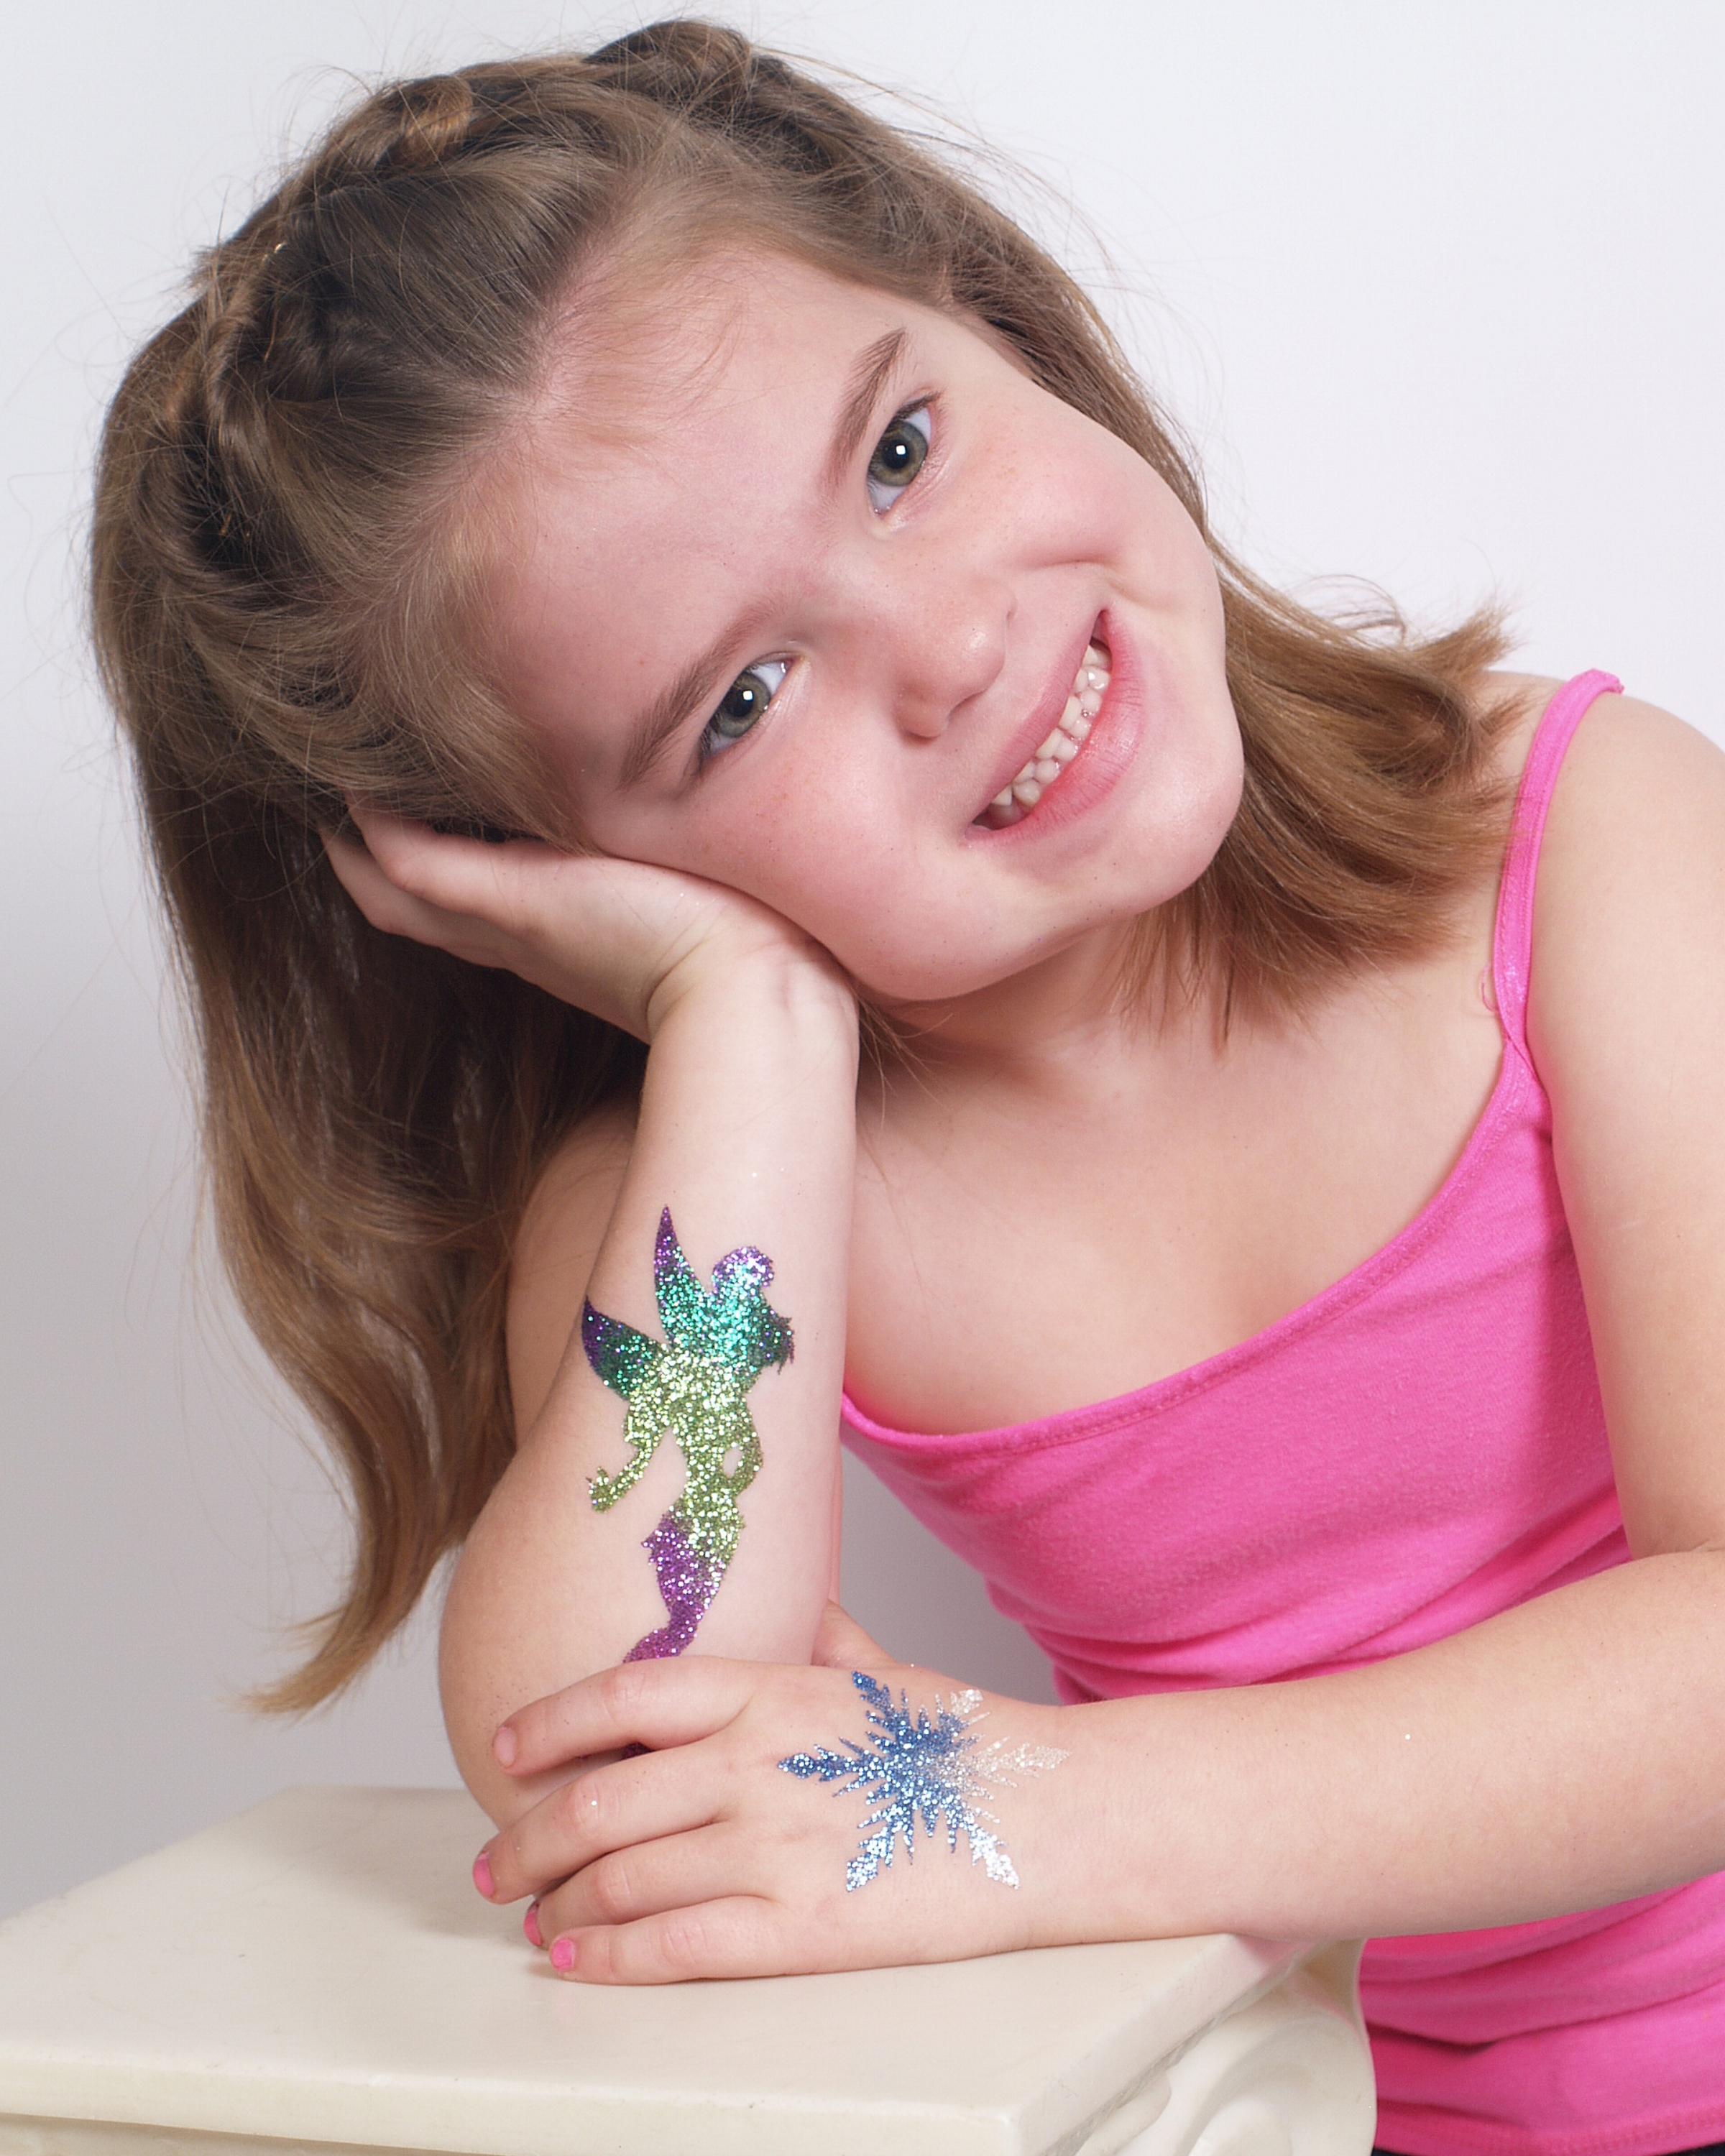 d86737a14 Airbrush Tattoos | Florida | Fabulous Faces Entertainment